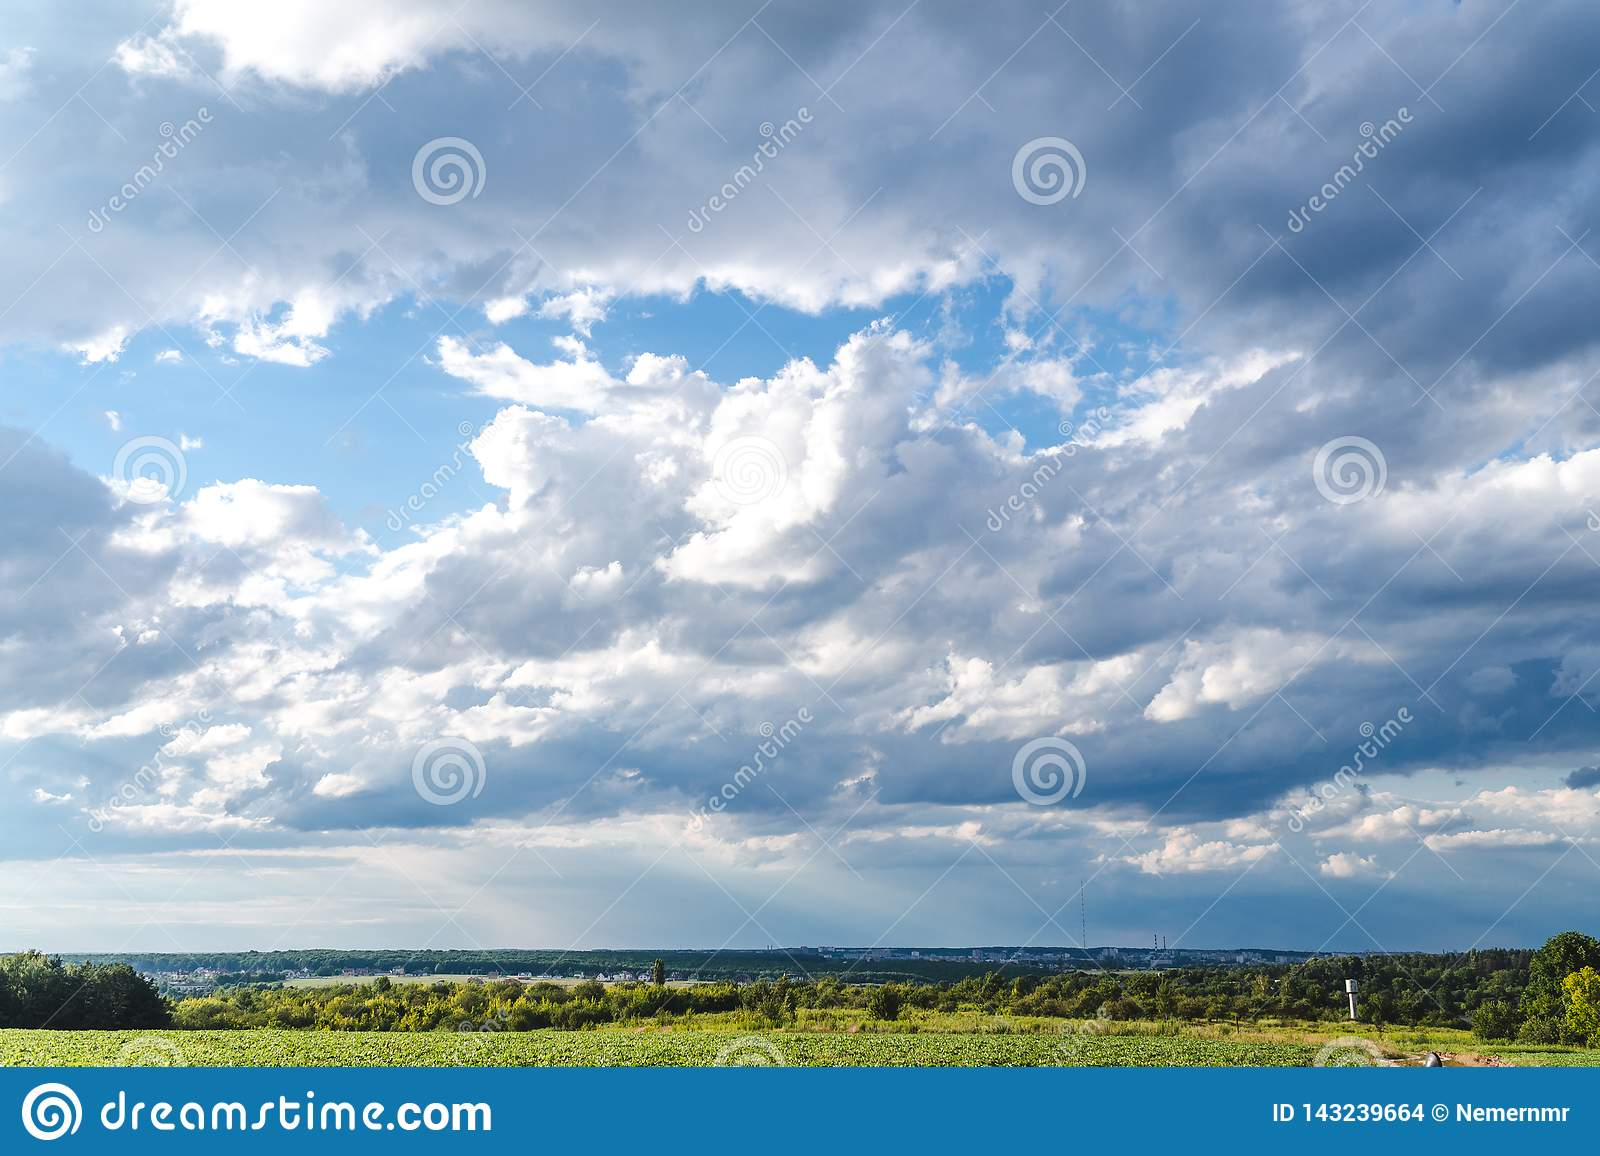 Sky clouds,sky with clouds and sun view outdoor city horizont